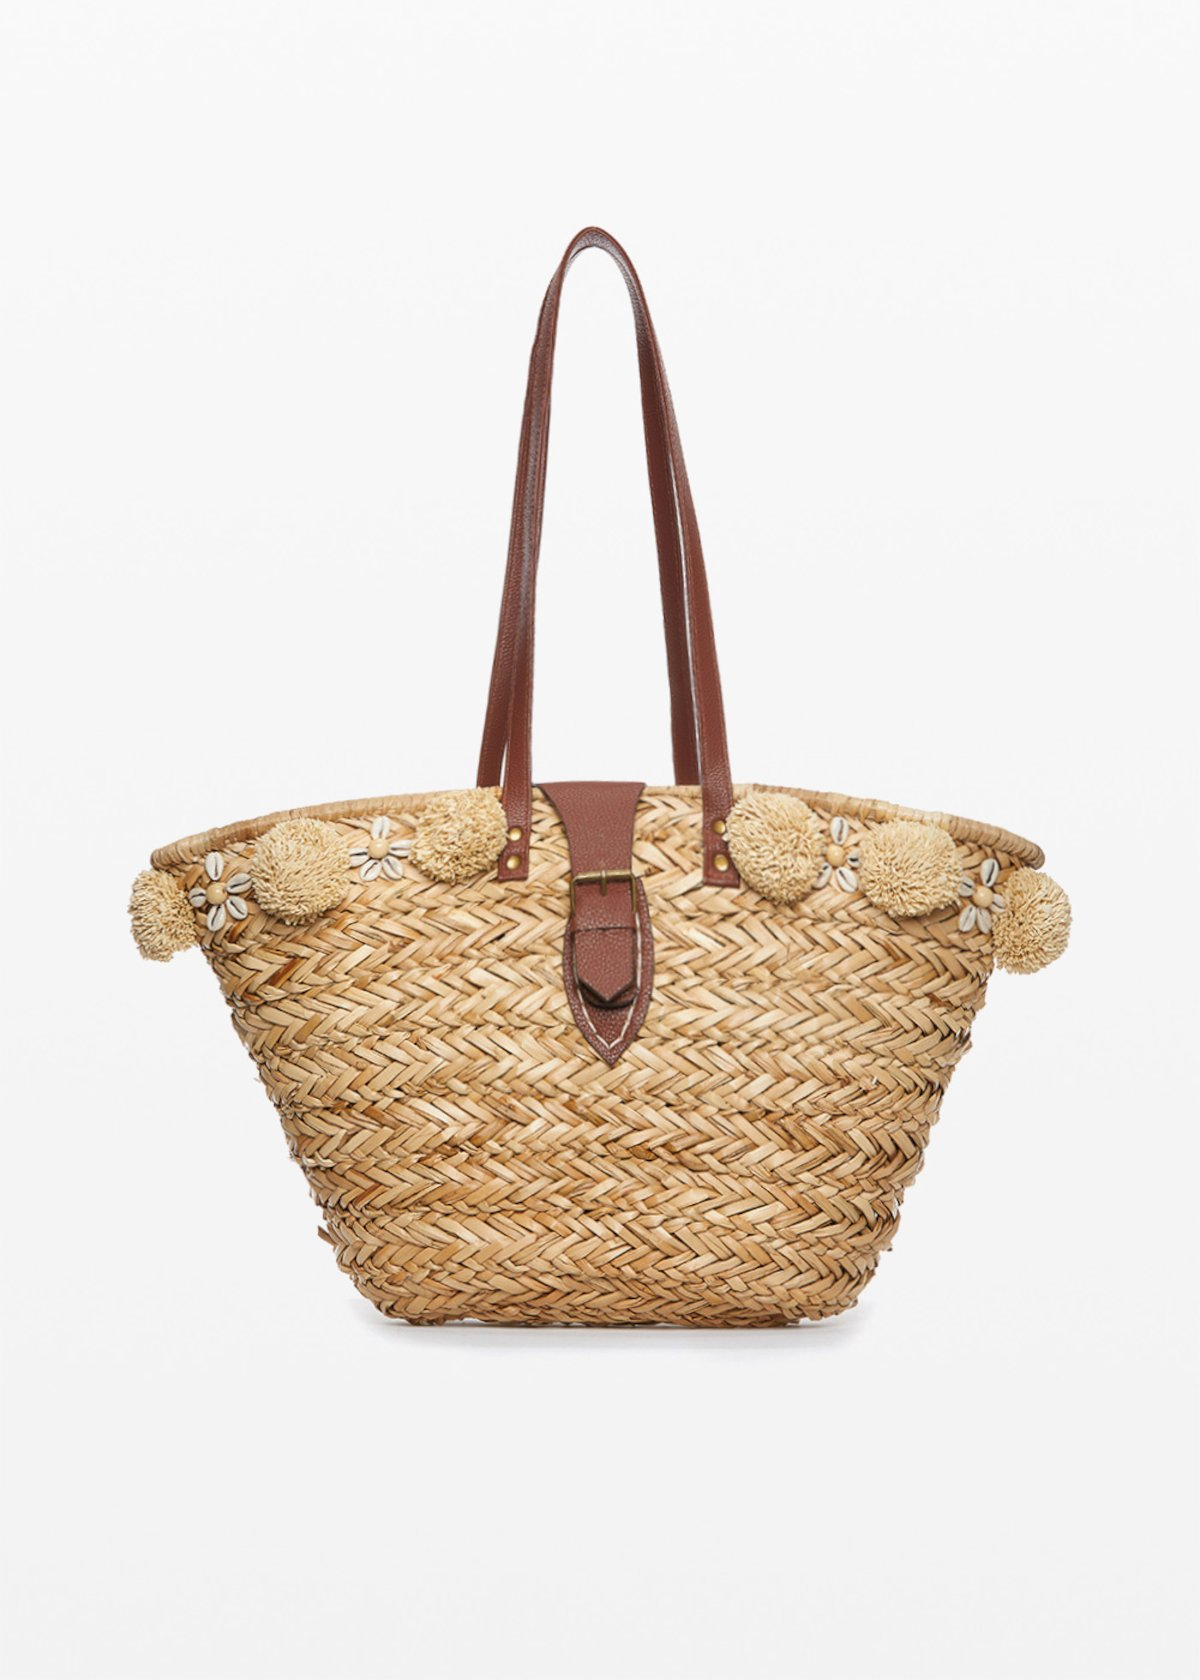 Marlie straw bag with pompon and shells details - Safari - Woman - Category image